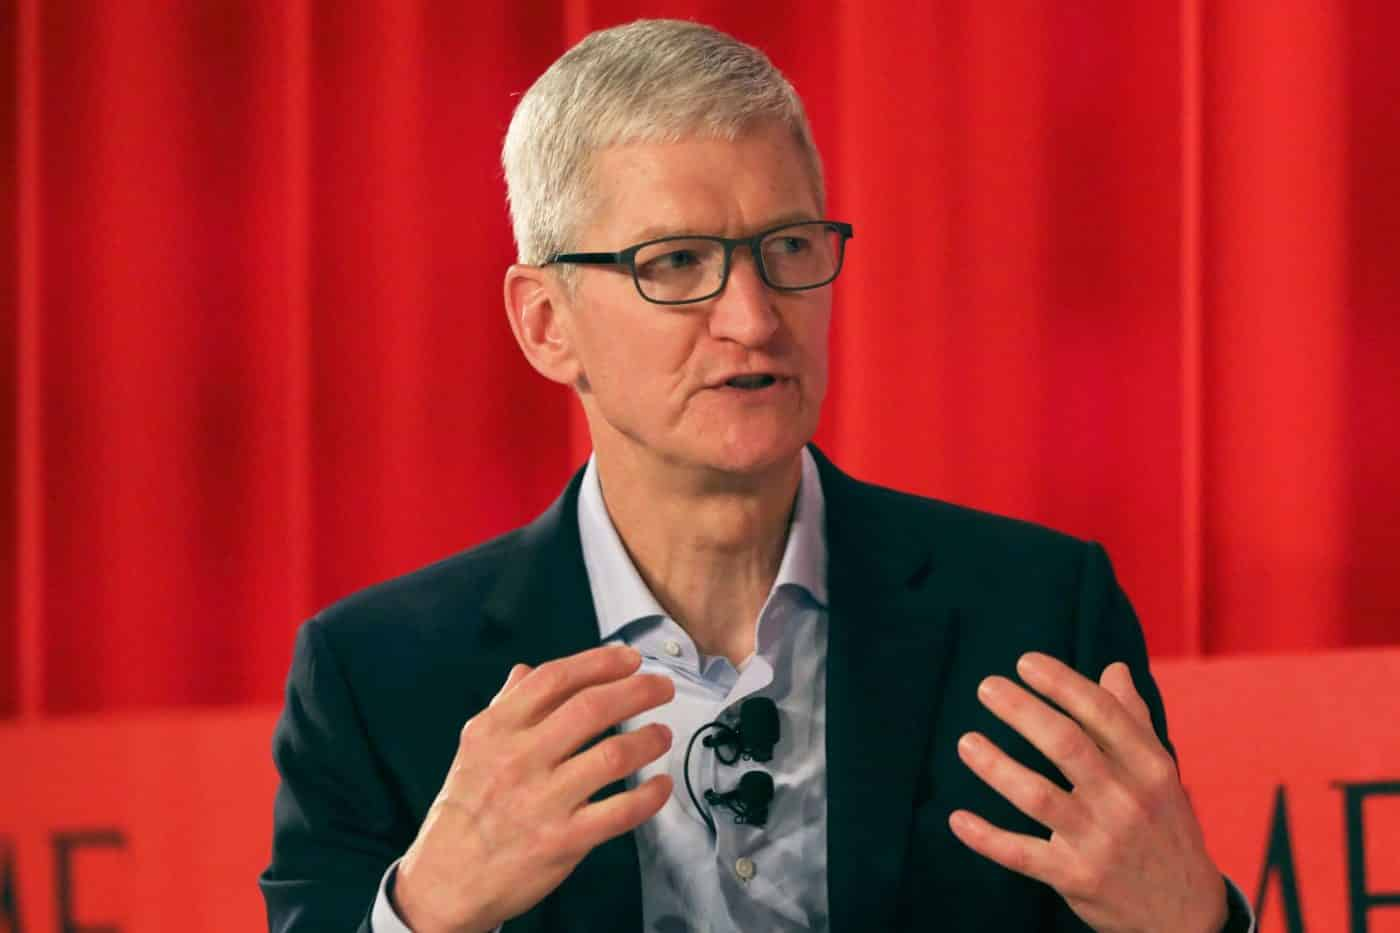 Apple CEO Tim Cook speaking at a Time Magazine conference